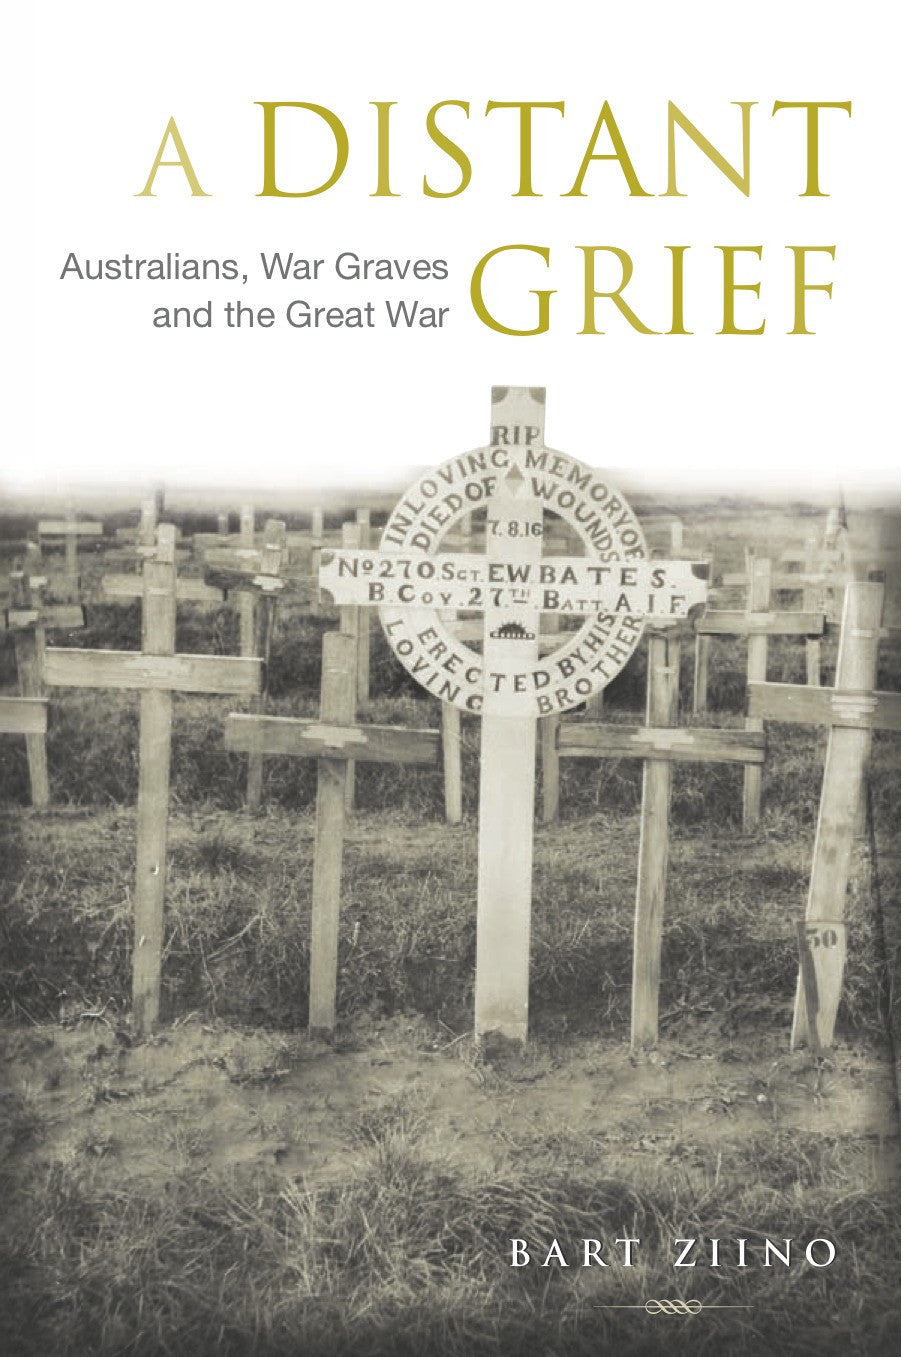 A Distant Grief: Australians, War Graves and the Great War